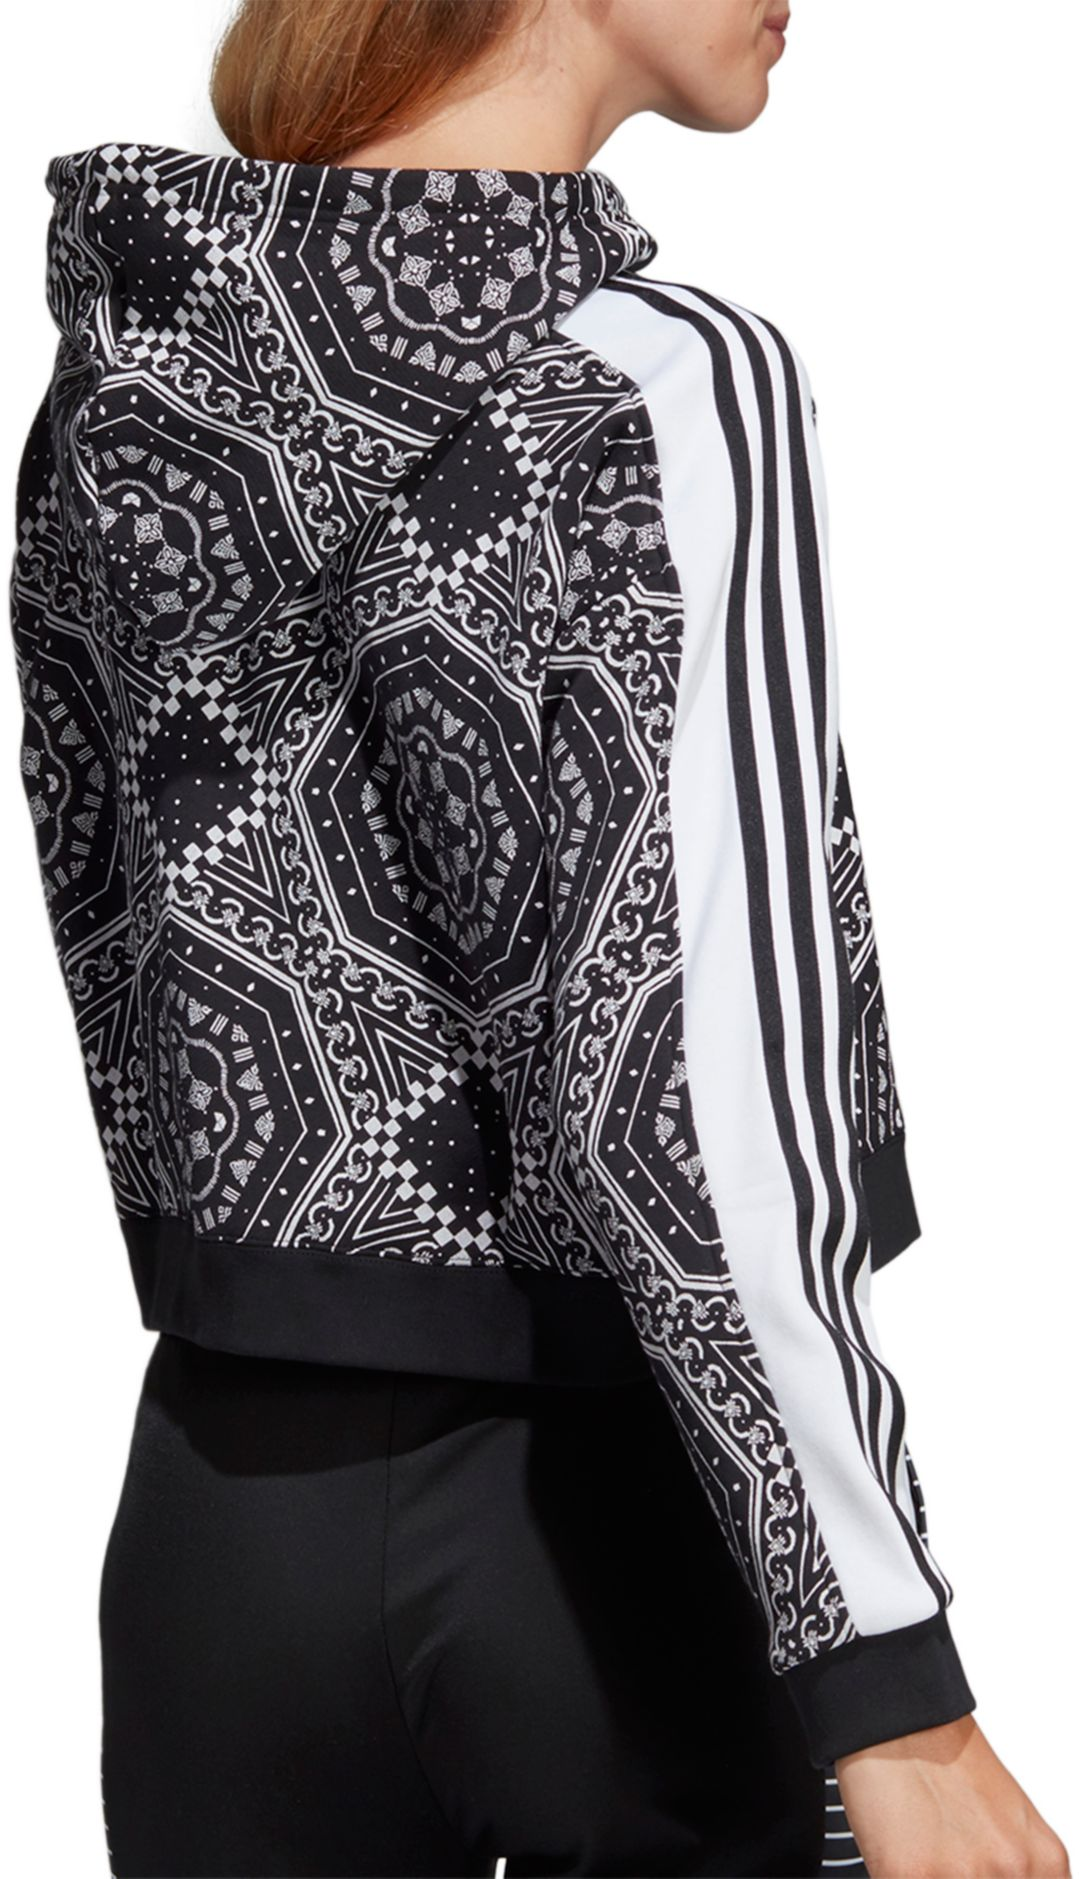 998c984dc74 adidas Originals Women's Printed Cropped Hoodie. noImageFound. Previous. 1.  2